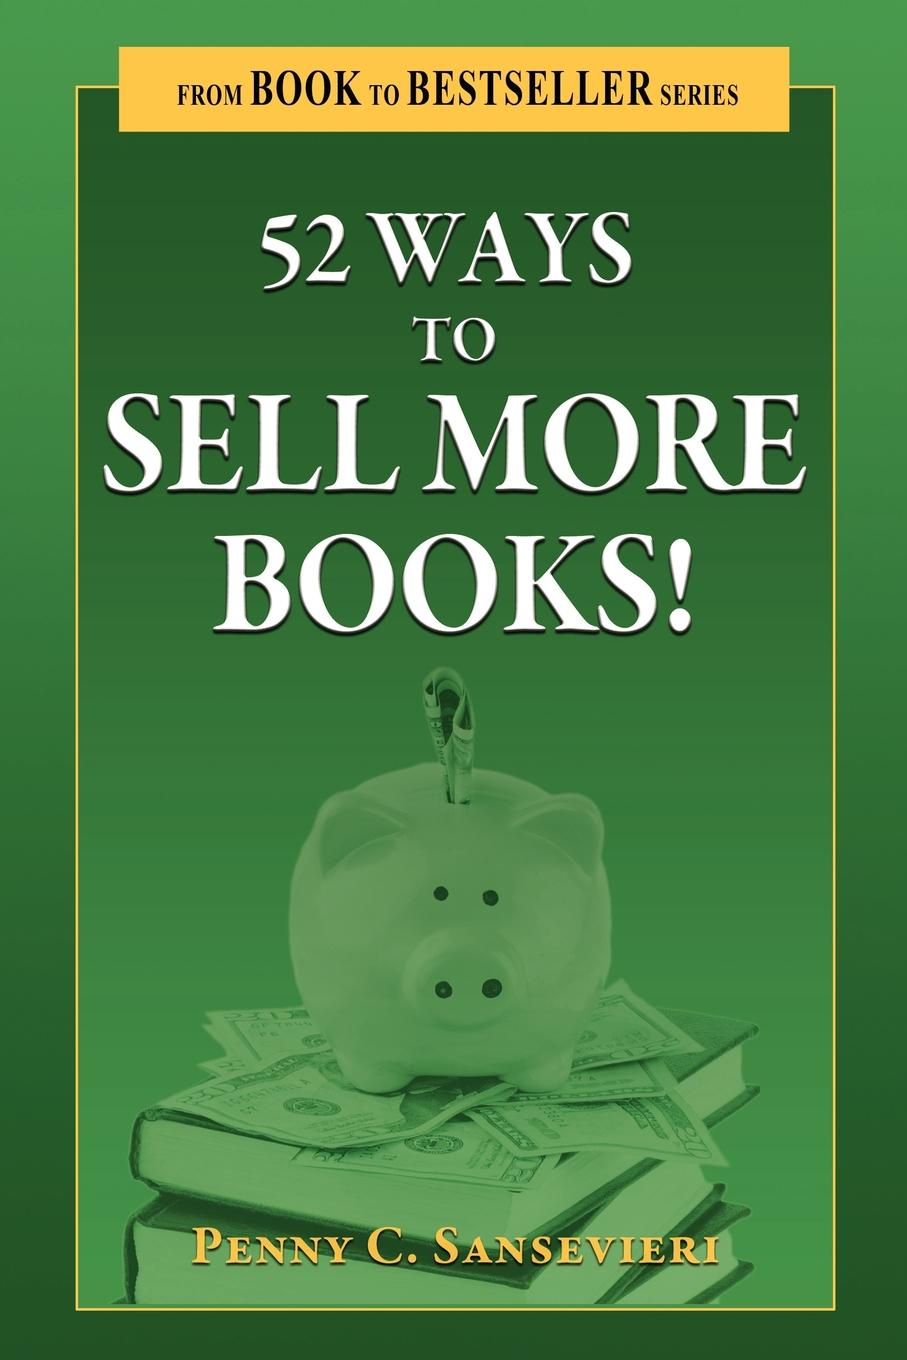 Penny C. Sansevieri 52 Ways to Sell More Books! брайан трейси be a sales superstar 21 great ways to sell more faster easier in tough markets